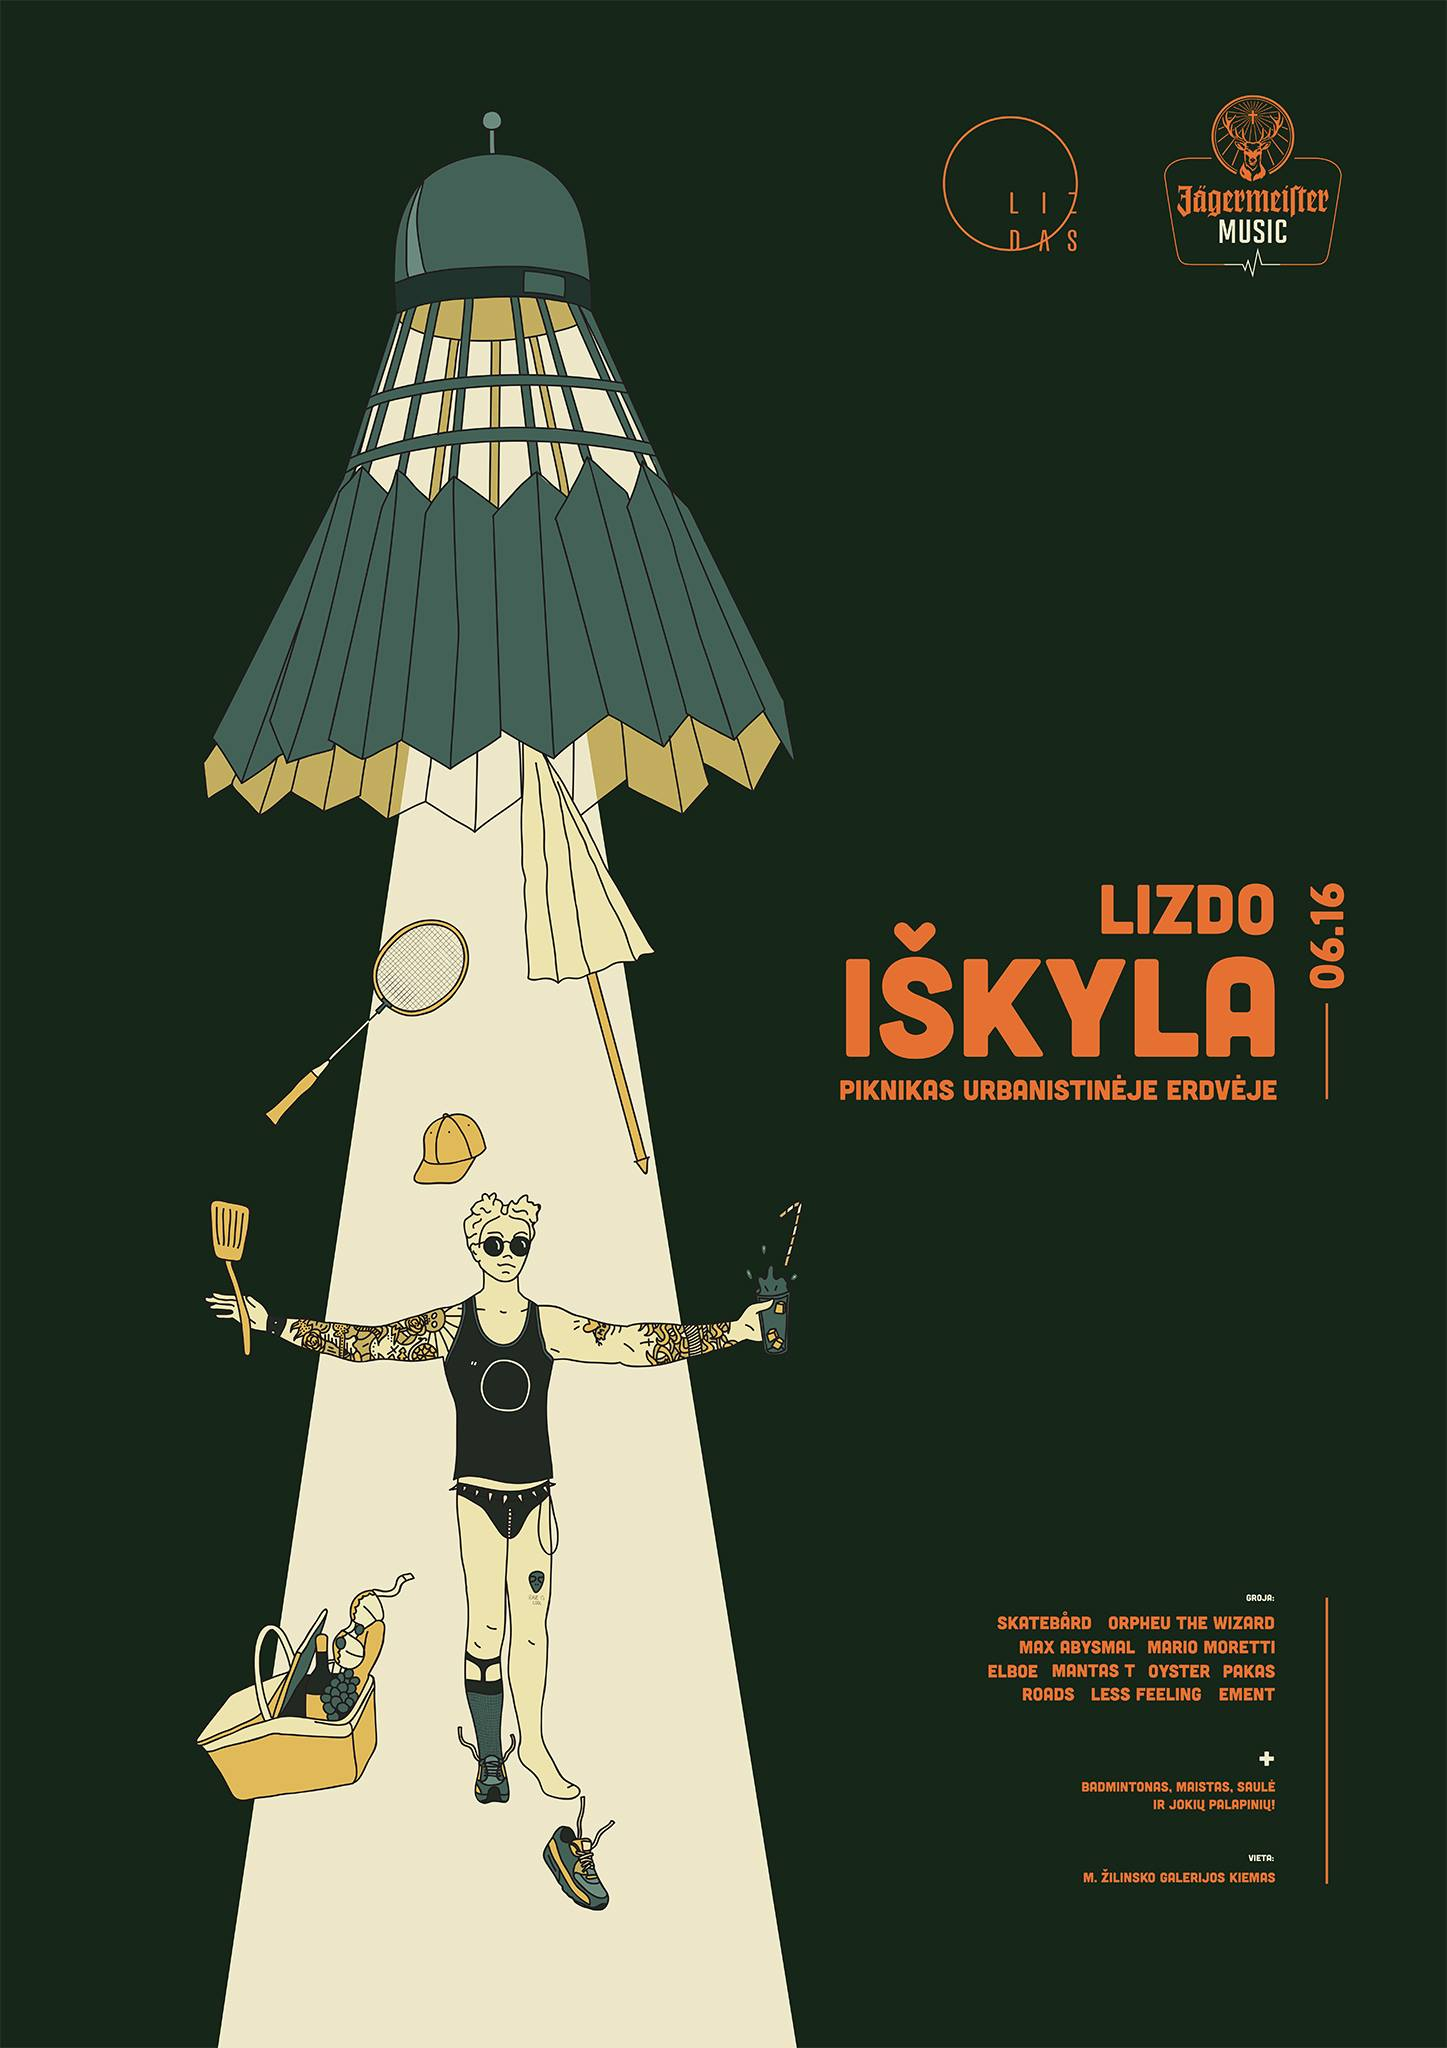 lizdas-iskyla-skatebard-red-light-radio